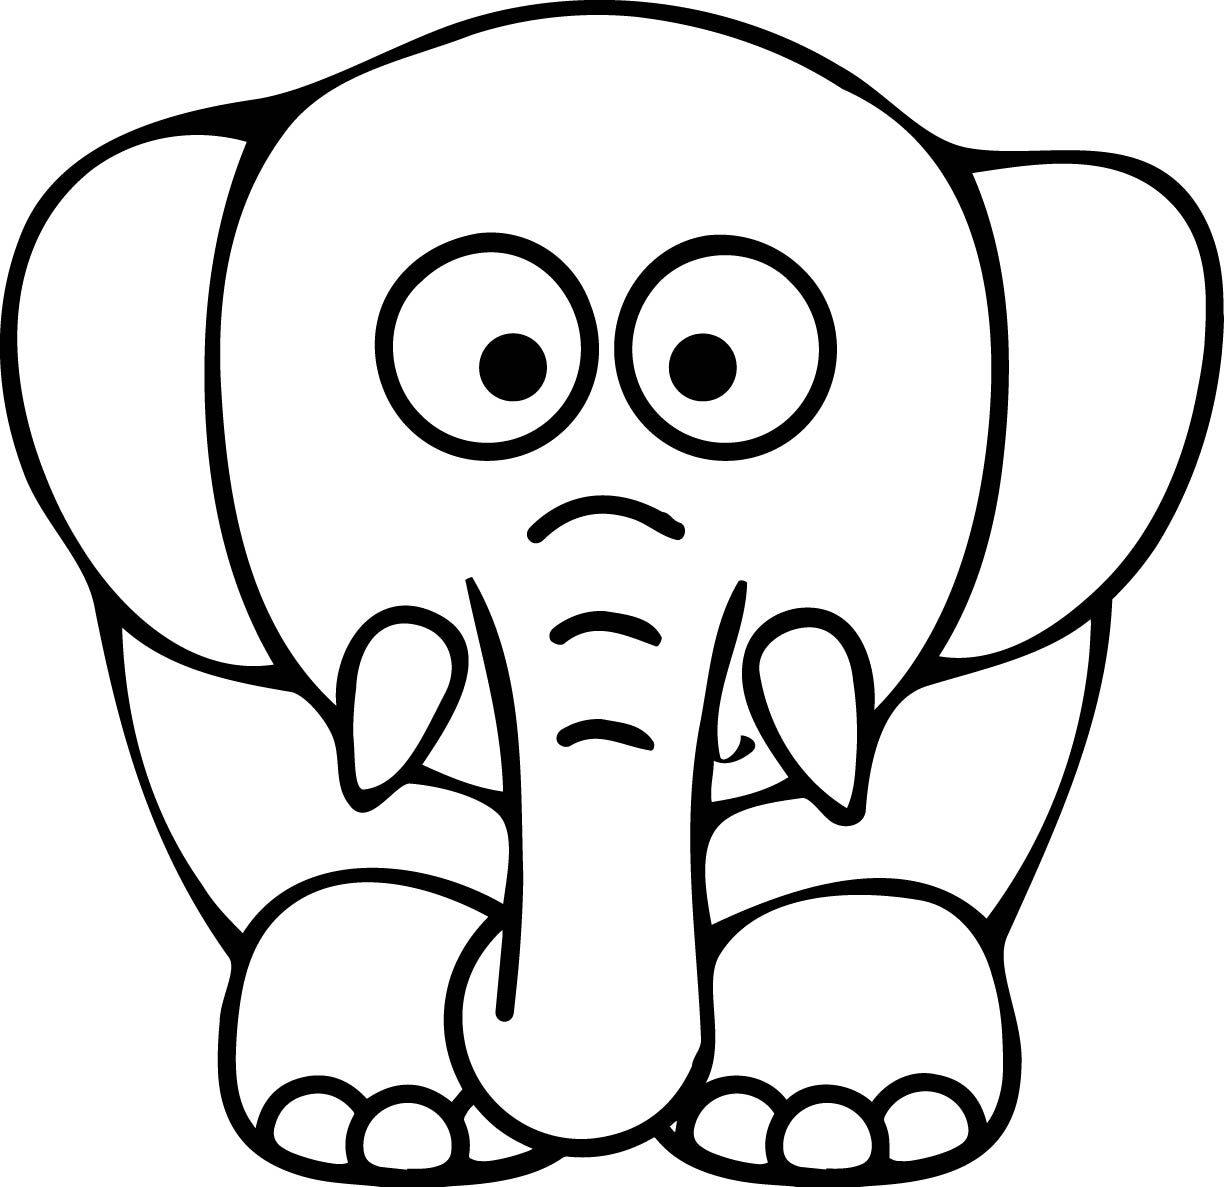 coloring book elephant images elephant coloring pages free download on clipartmag coloring book elephant images